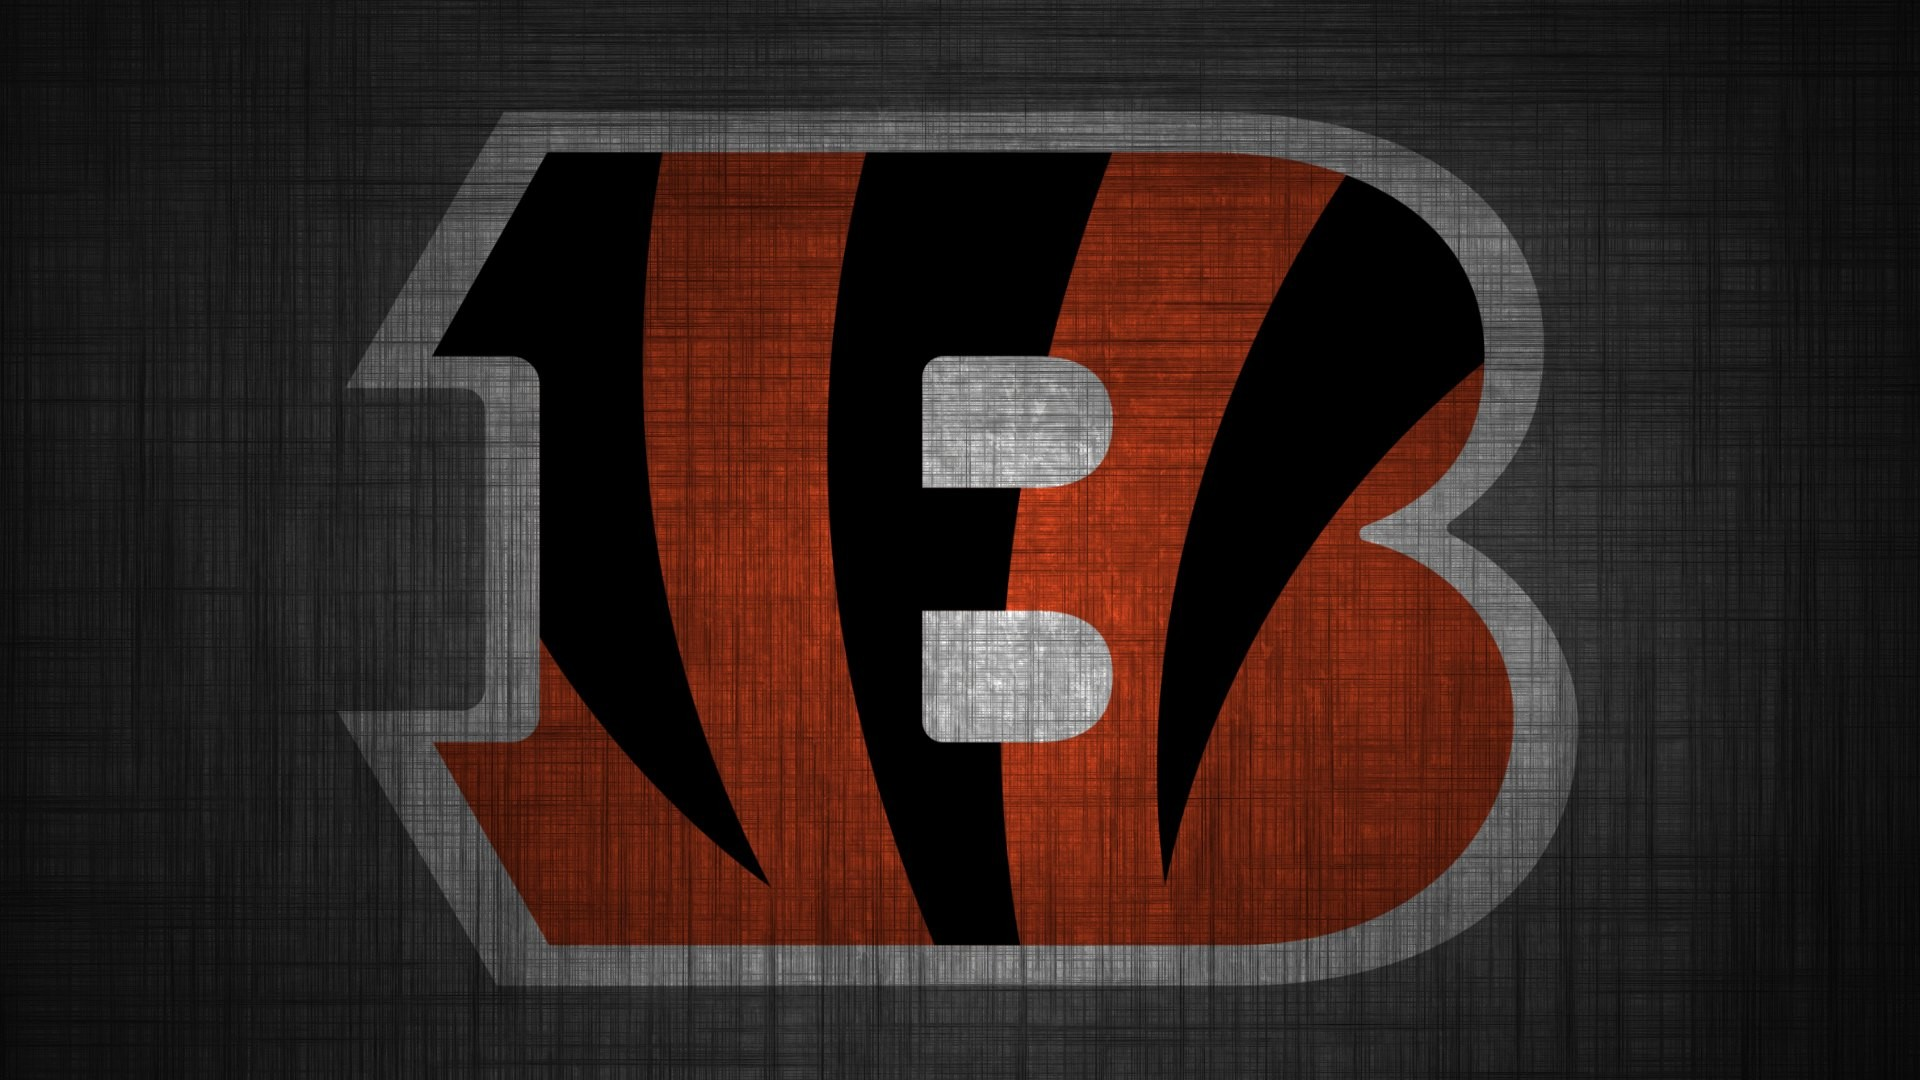 1920x1080 hd cincinnati bengals wallpaper cool background photos 1080p smart phone background photos free images desktop